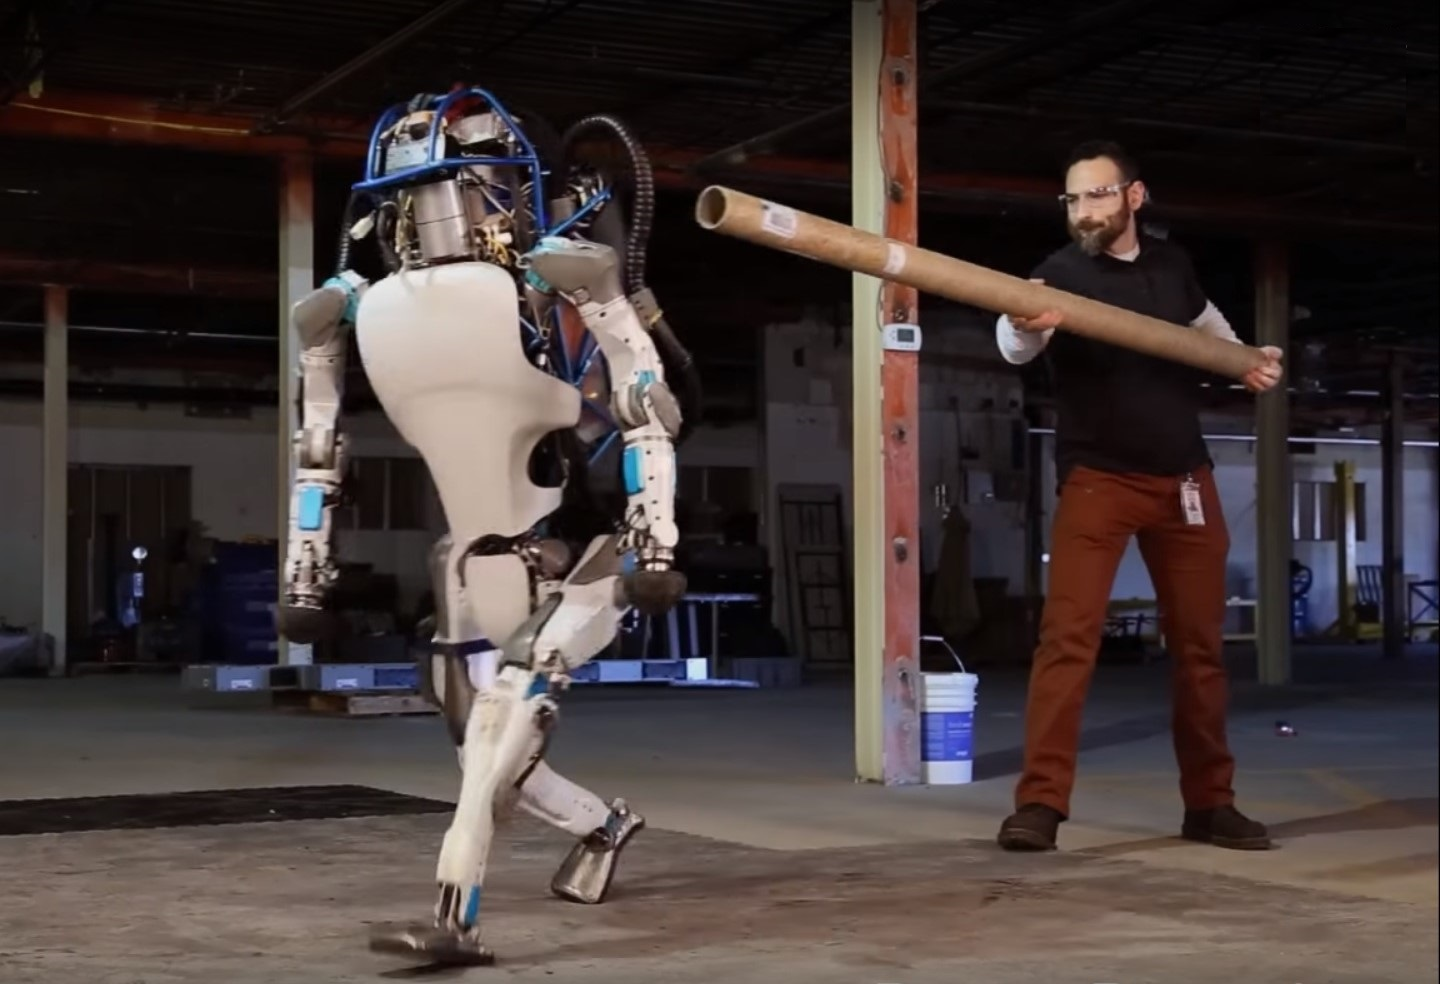 Watch a next-gen robot bounce back from bullying - GeekWire